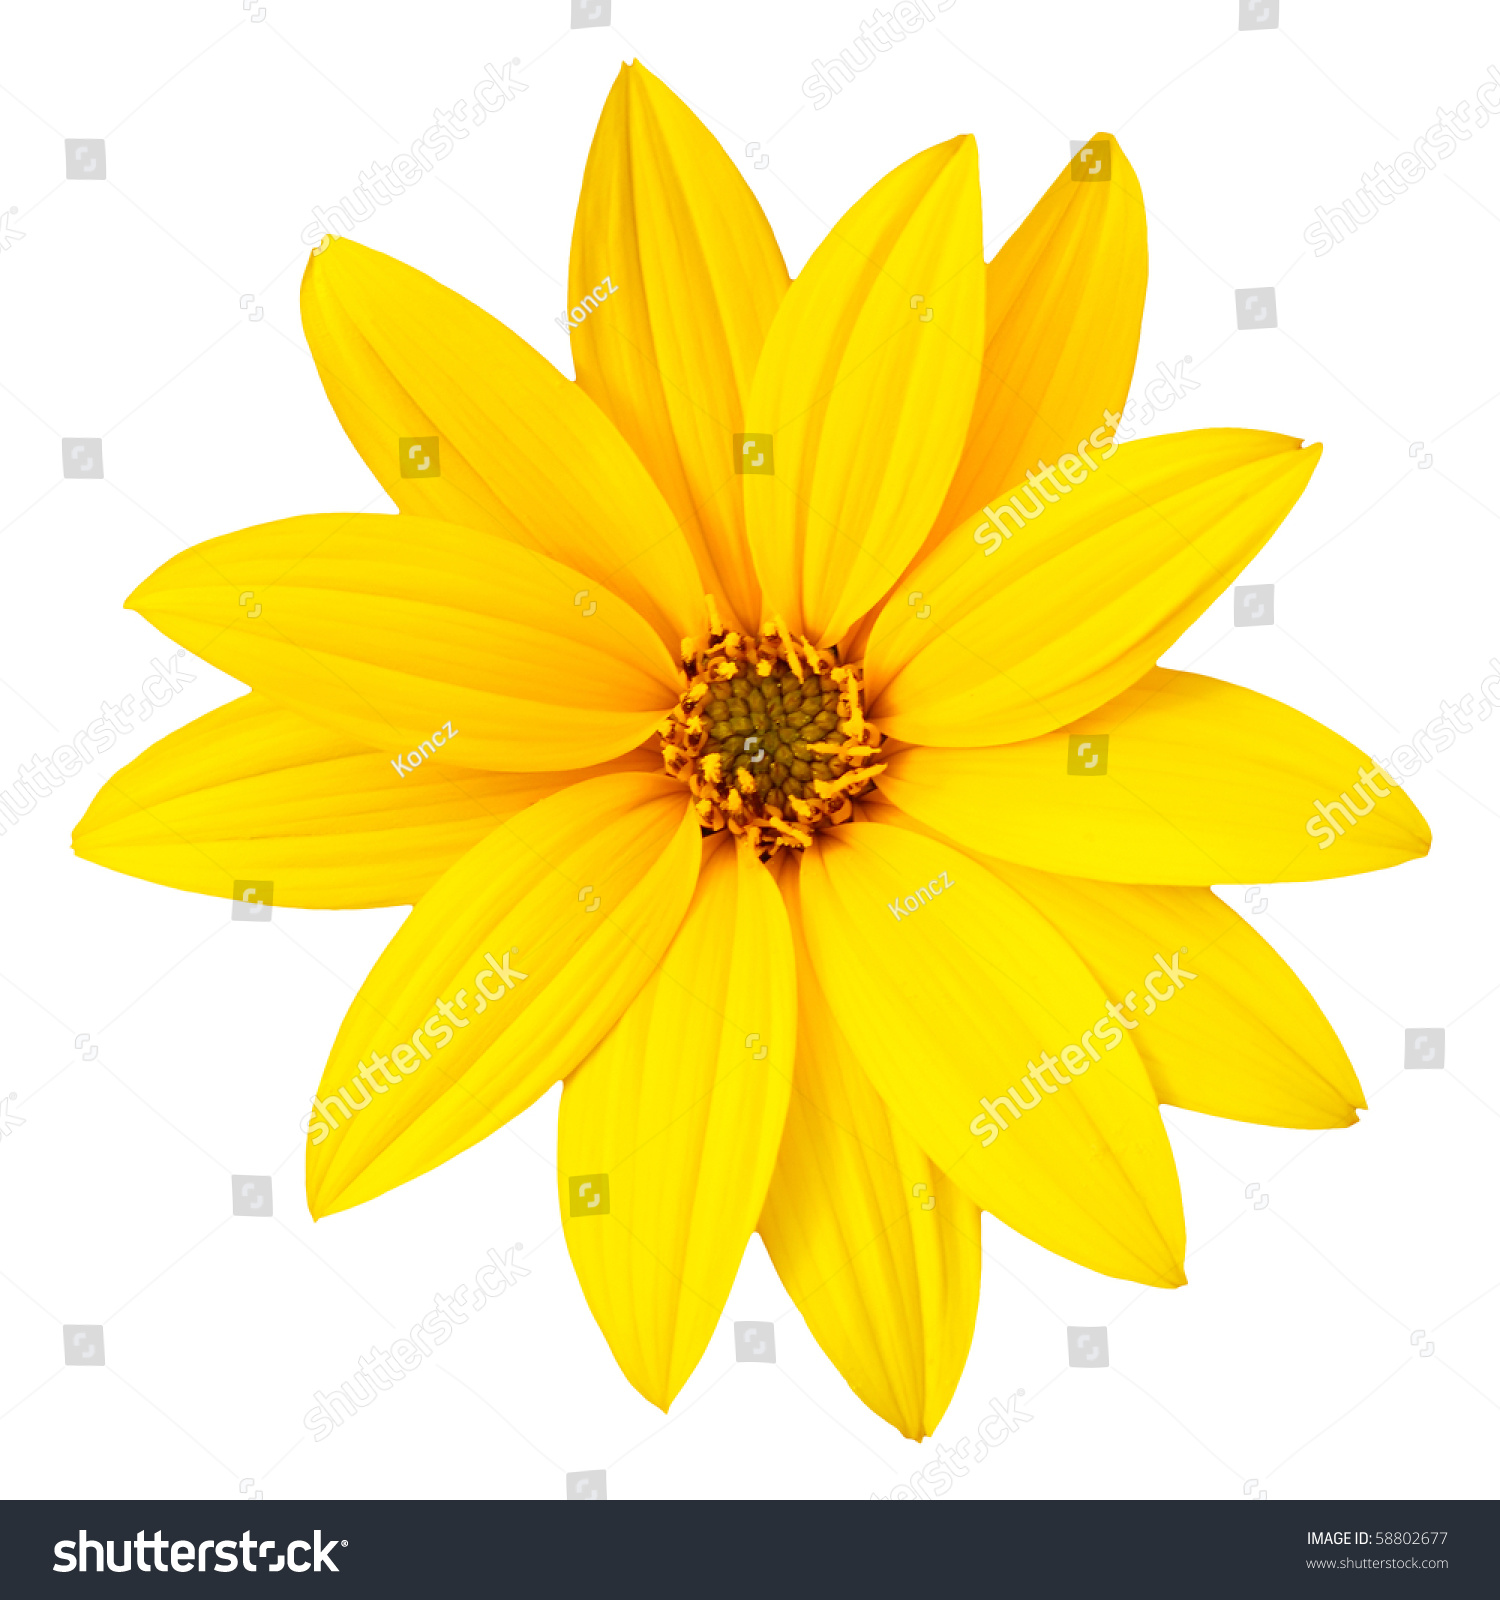 Royalty Free Yellow Flower Isolated On White 58802677 Stock Photo